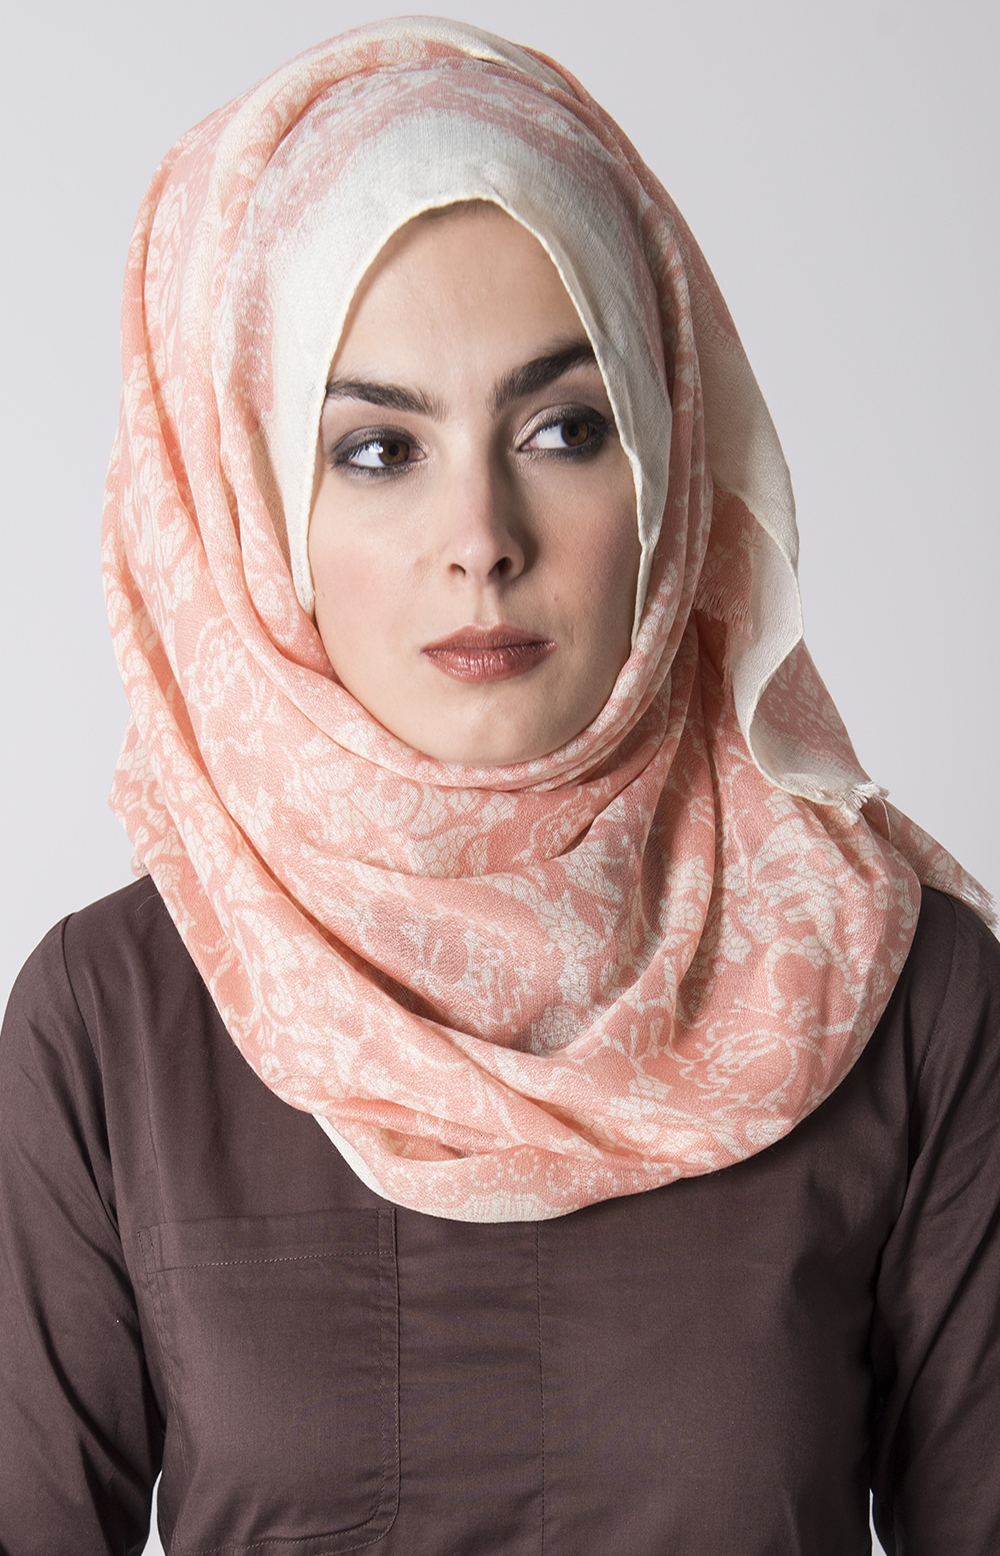 The best way to wear a hijab